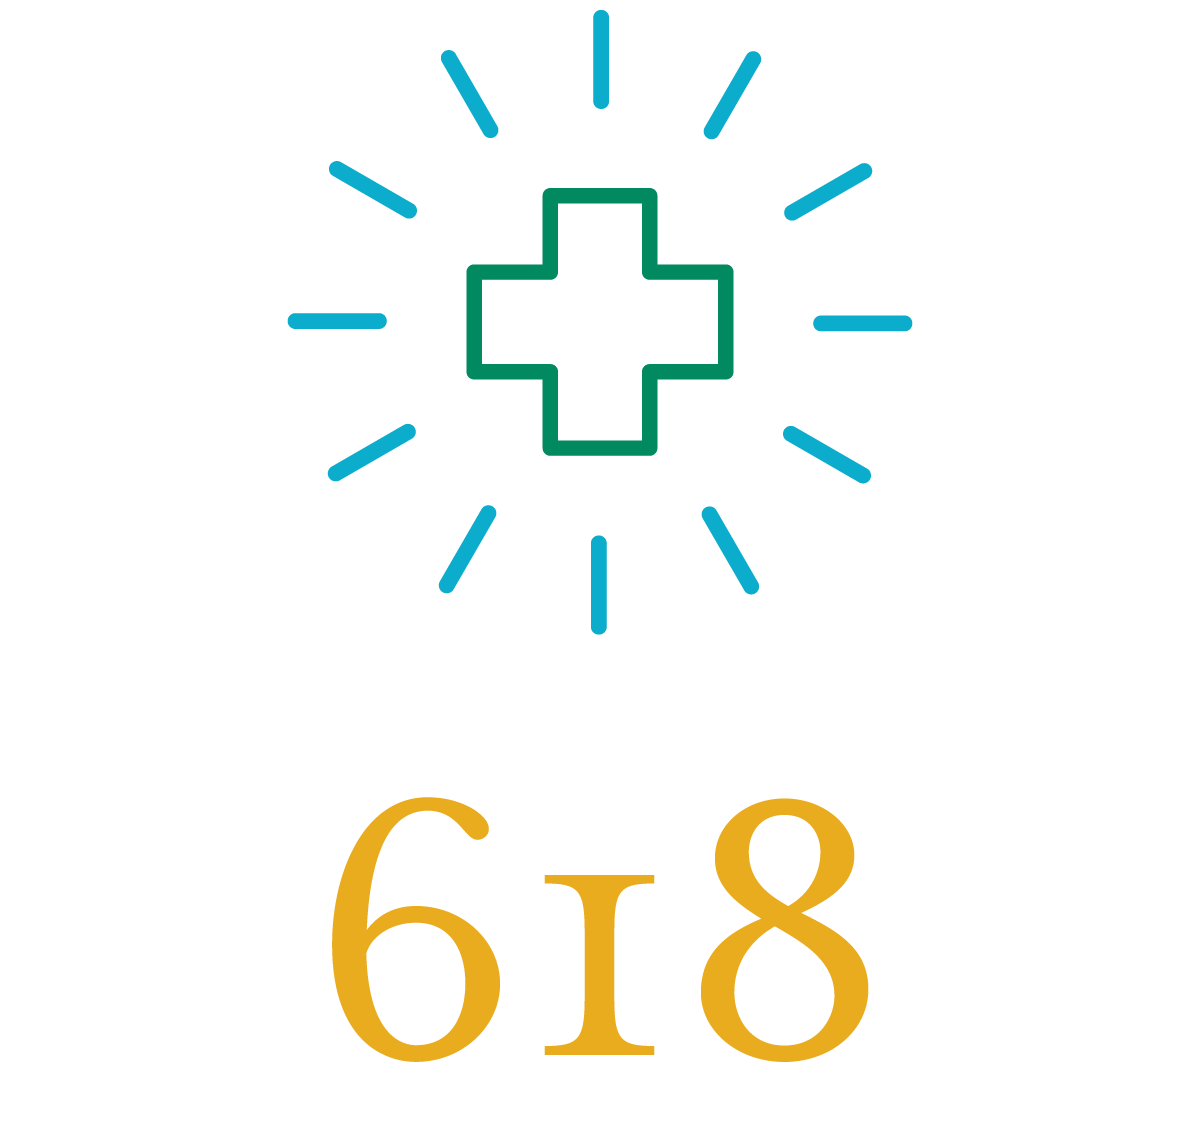 618.png